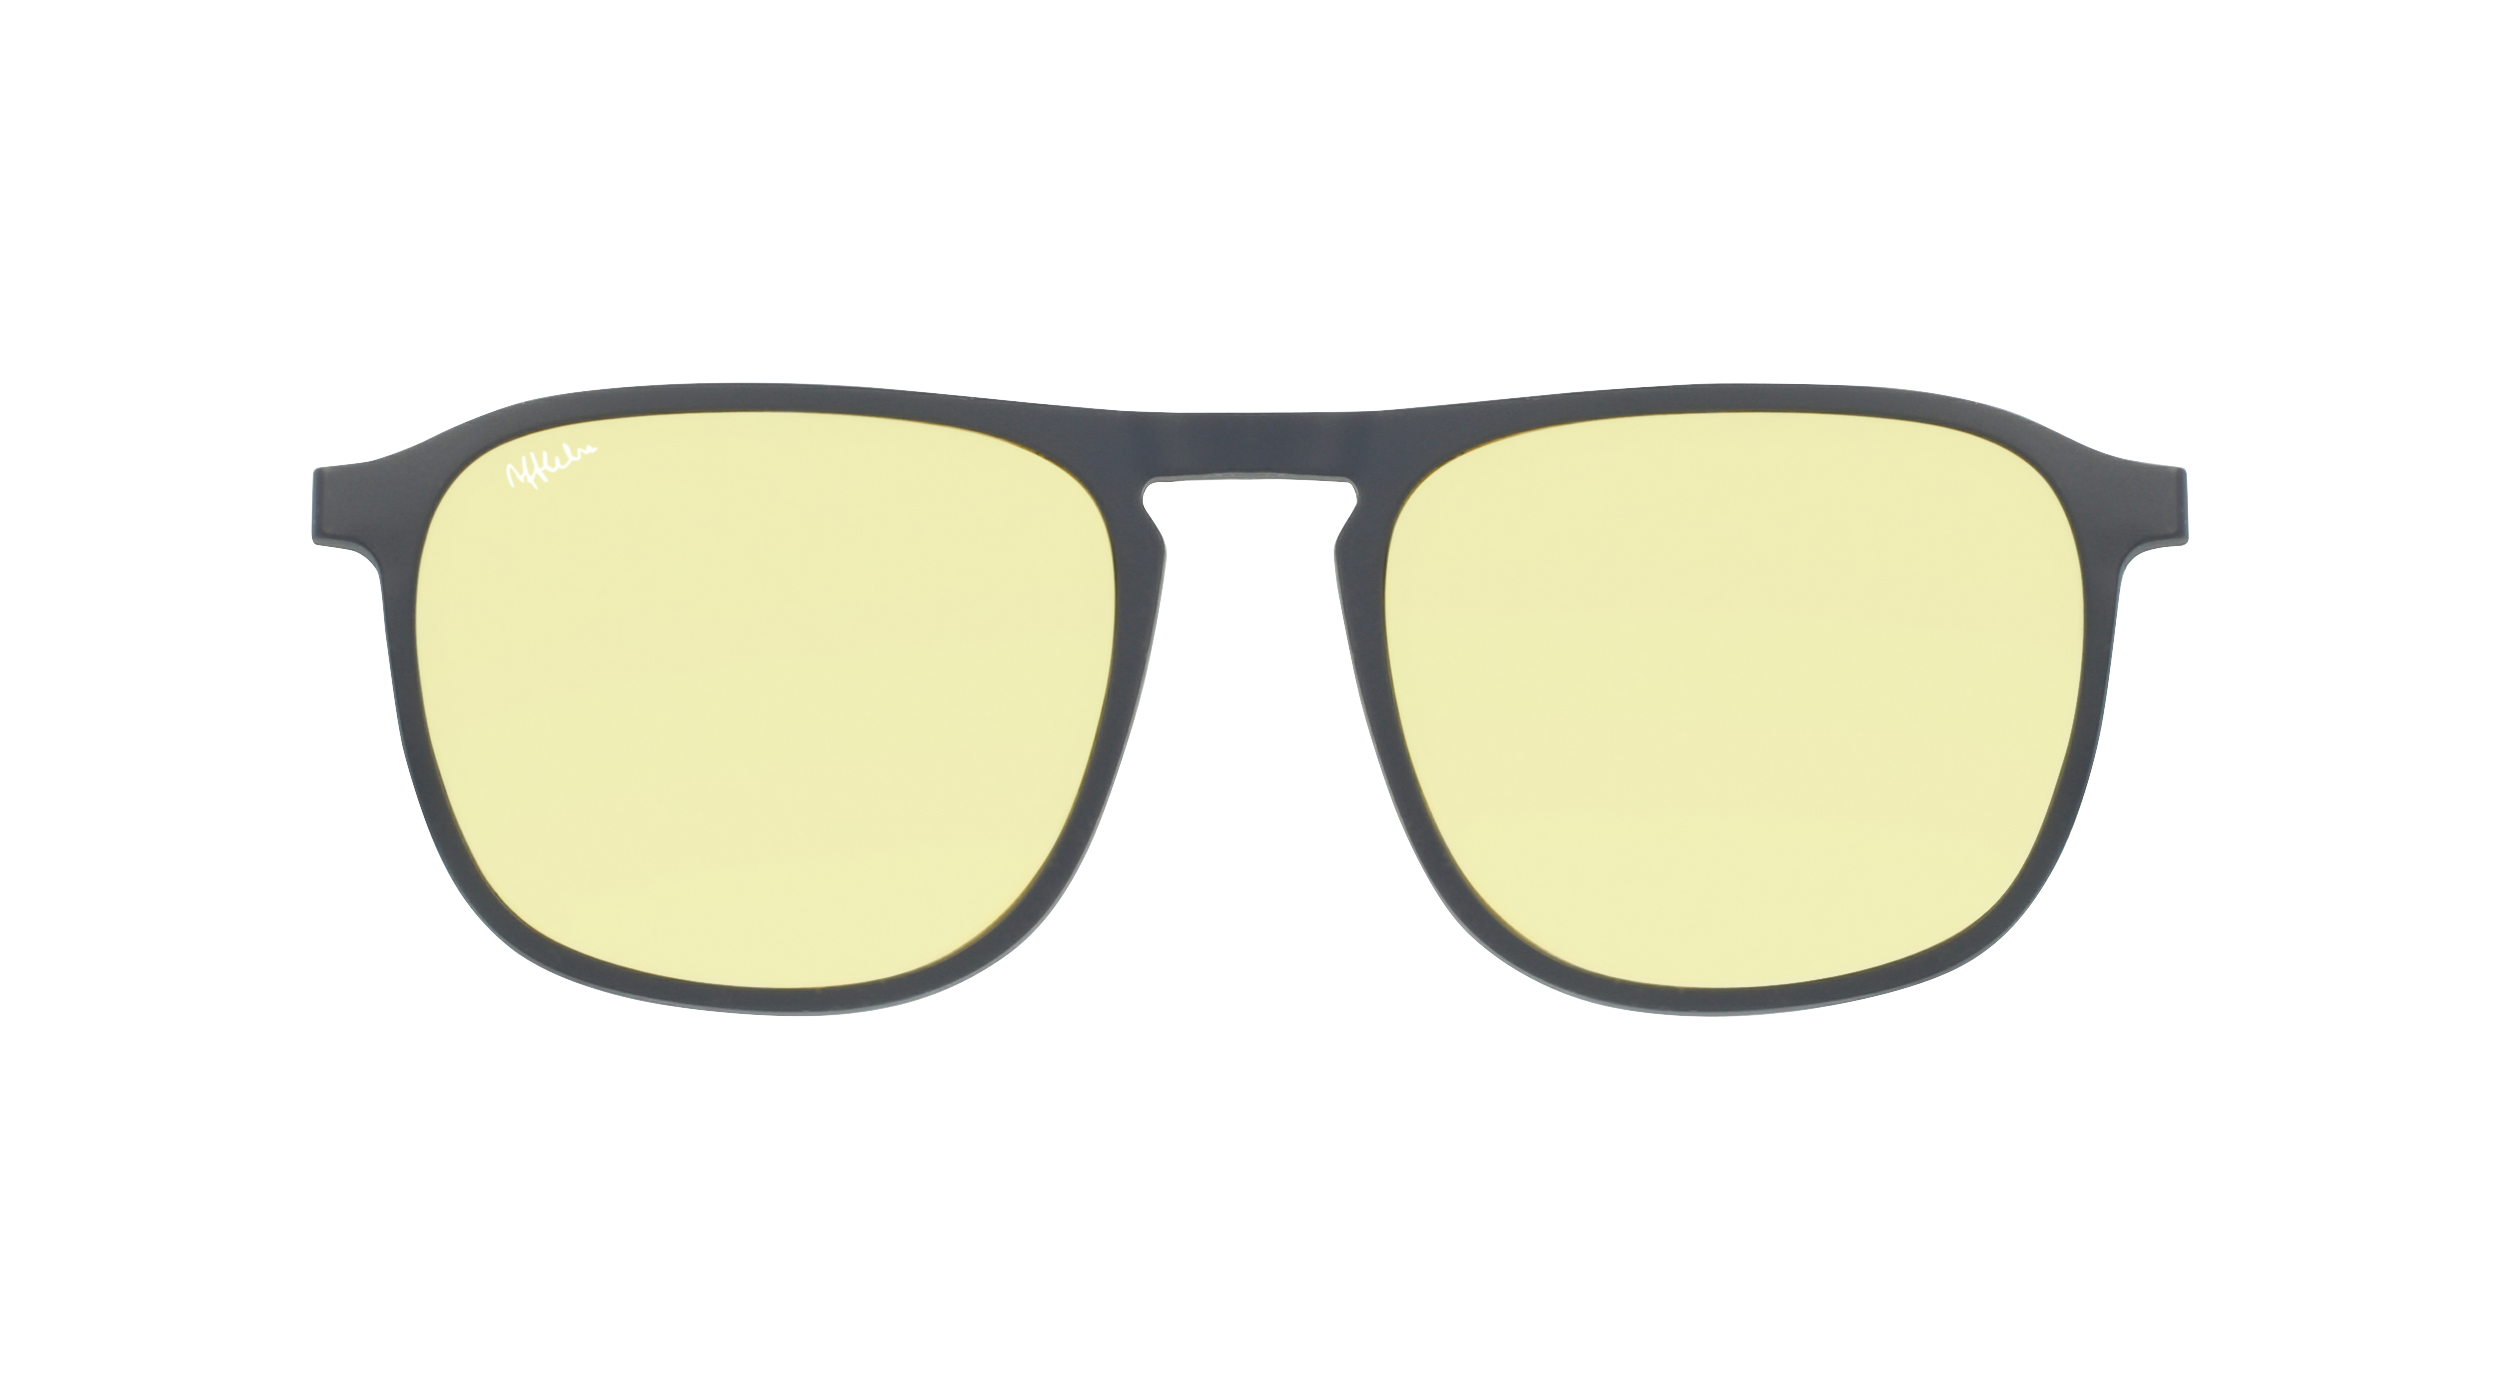 afflelou/france/products/smart_clip/clips_glasses/07630036457252.png